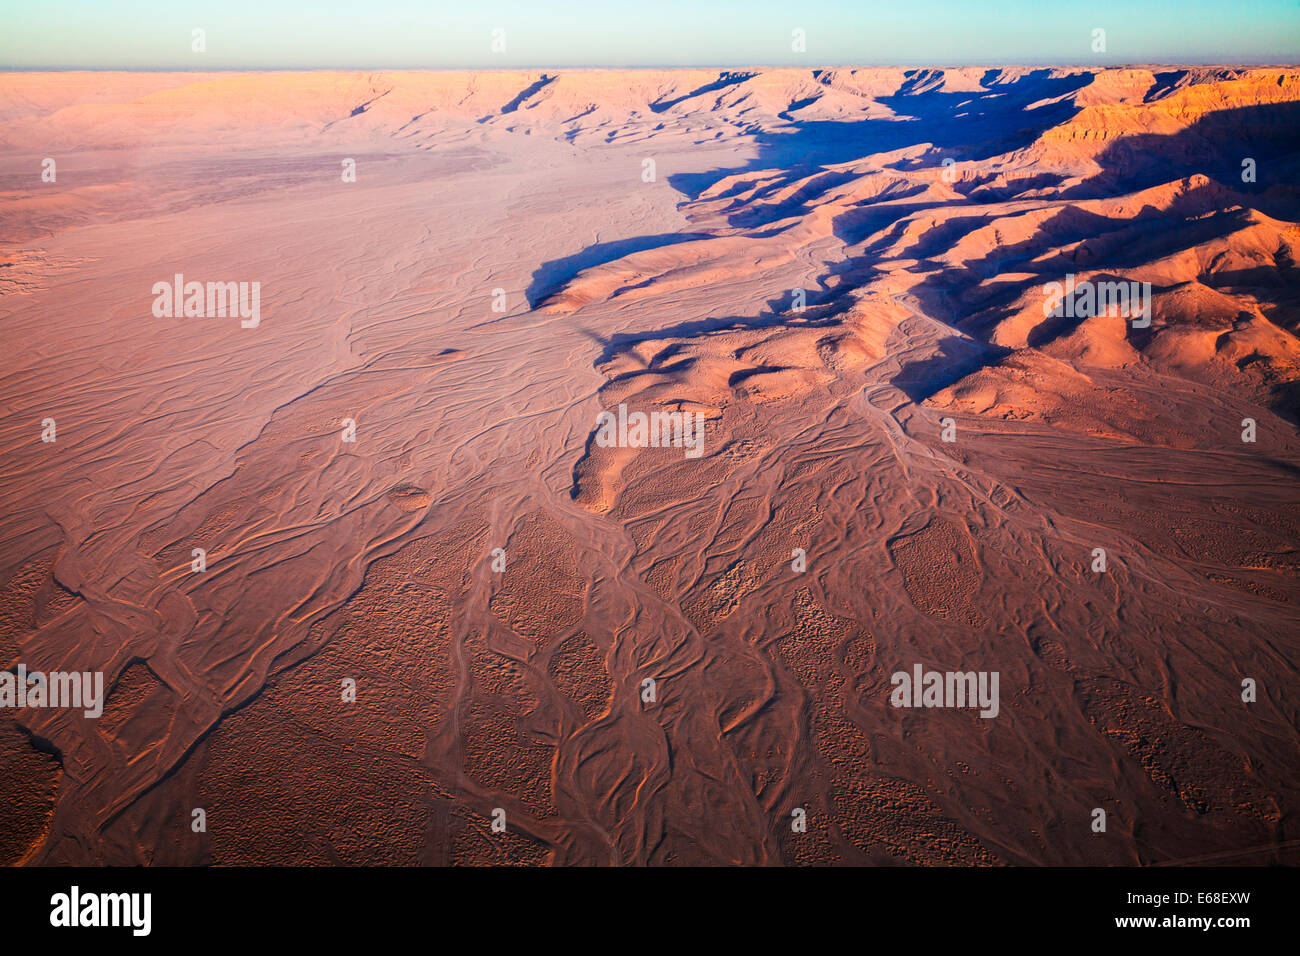 Aerial view of the desert landscape near the Valley of the Kings on West Bank of the Nile in Egypt. - Stock Image